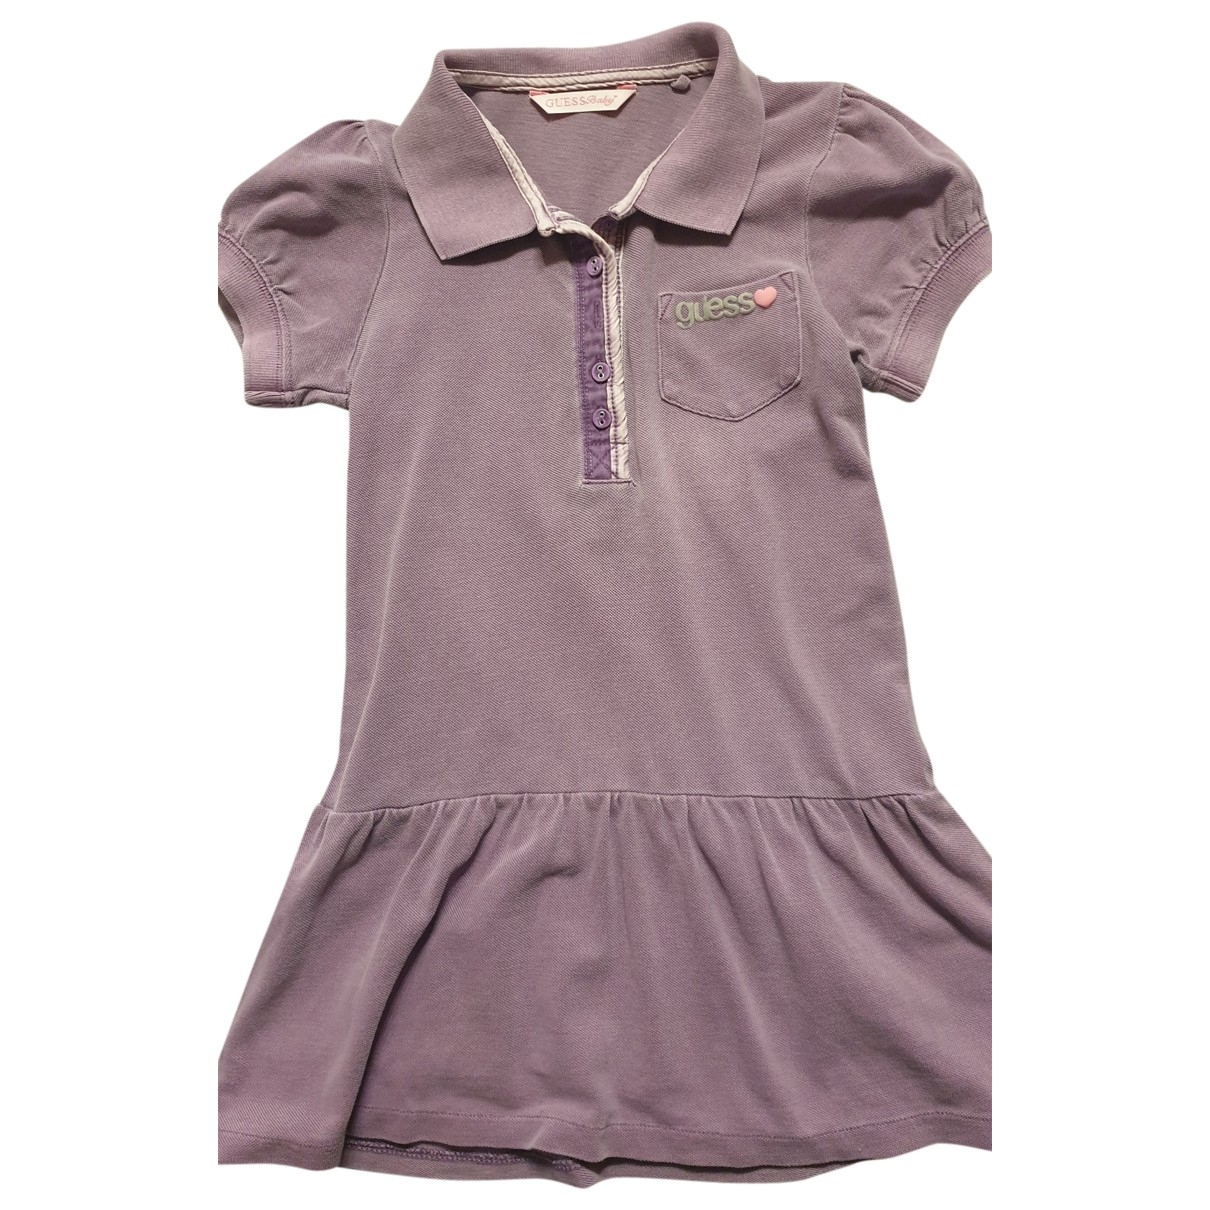 Guess \N Cotton dress for Kids 5 years - up to 108cm FR